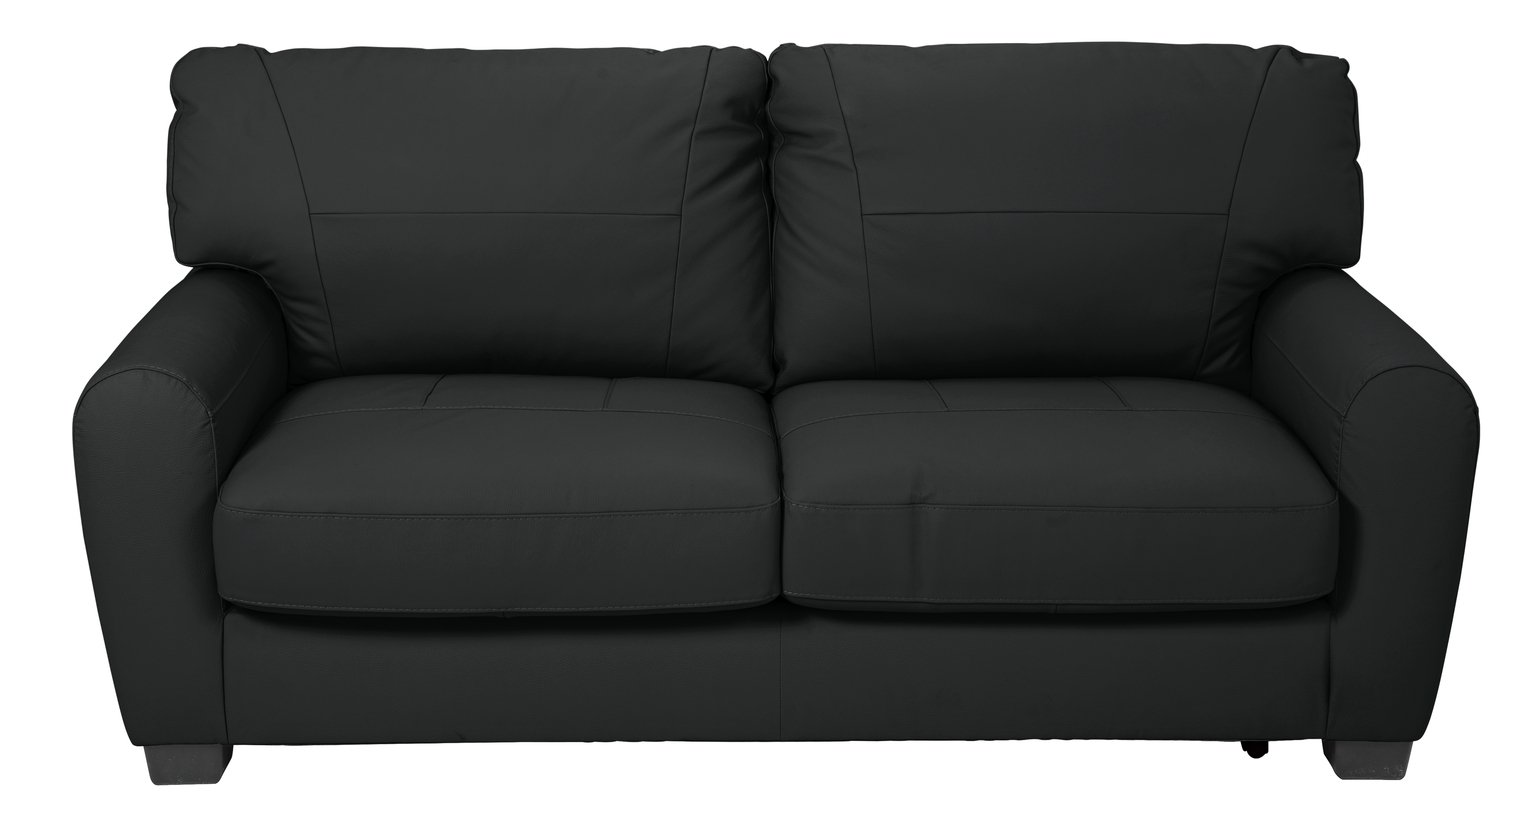 Argos Home Stefano 2 Seater Faux Leather Sofa Bed - Black